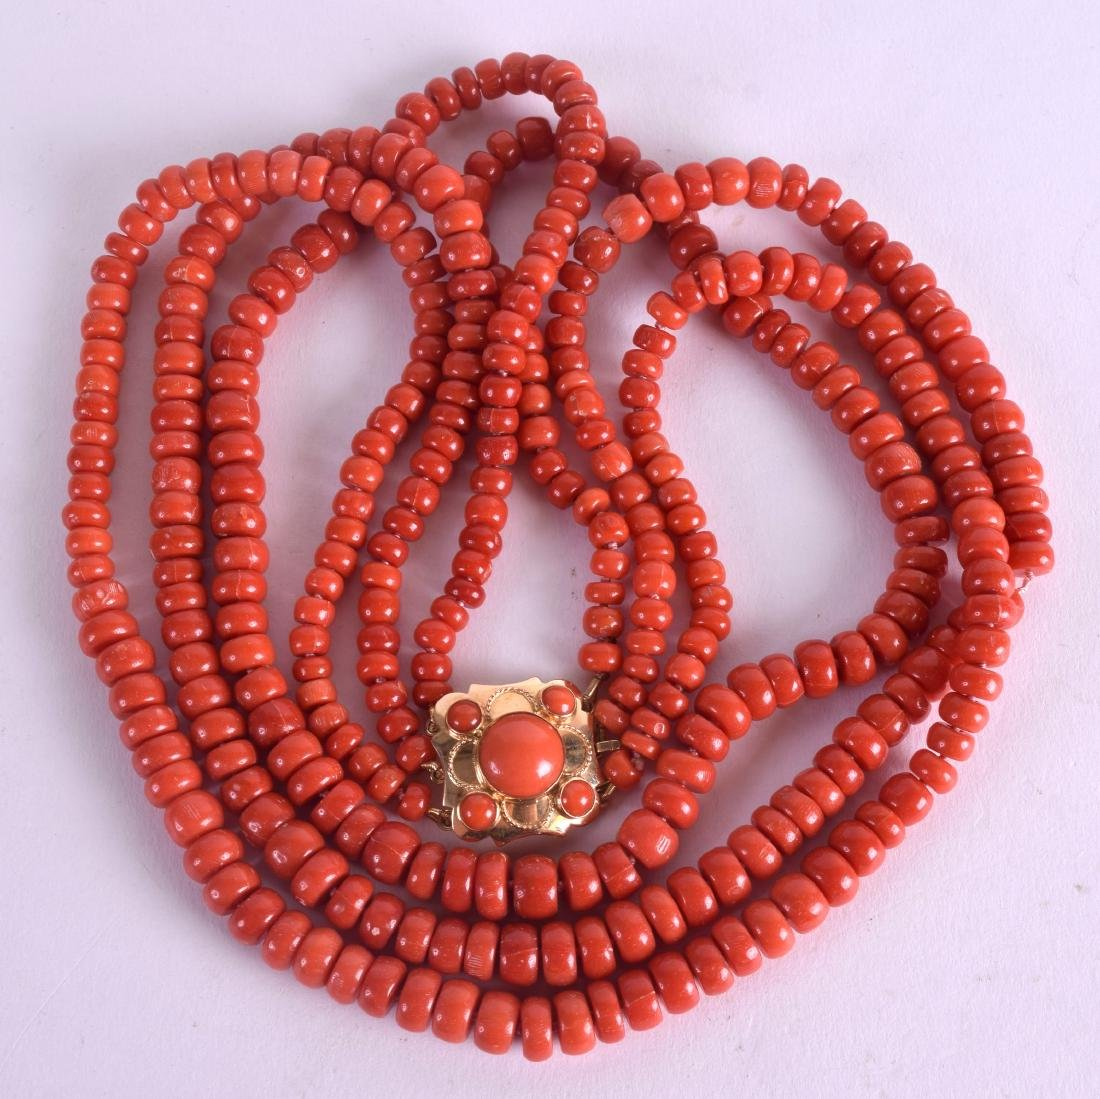 AN 18CT GOLD AND RED CORAL NECKLACE with coral inset